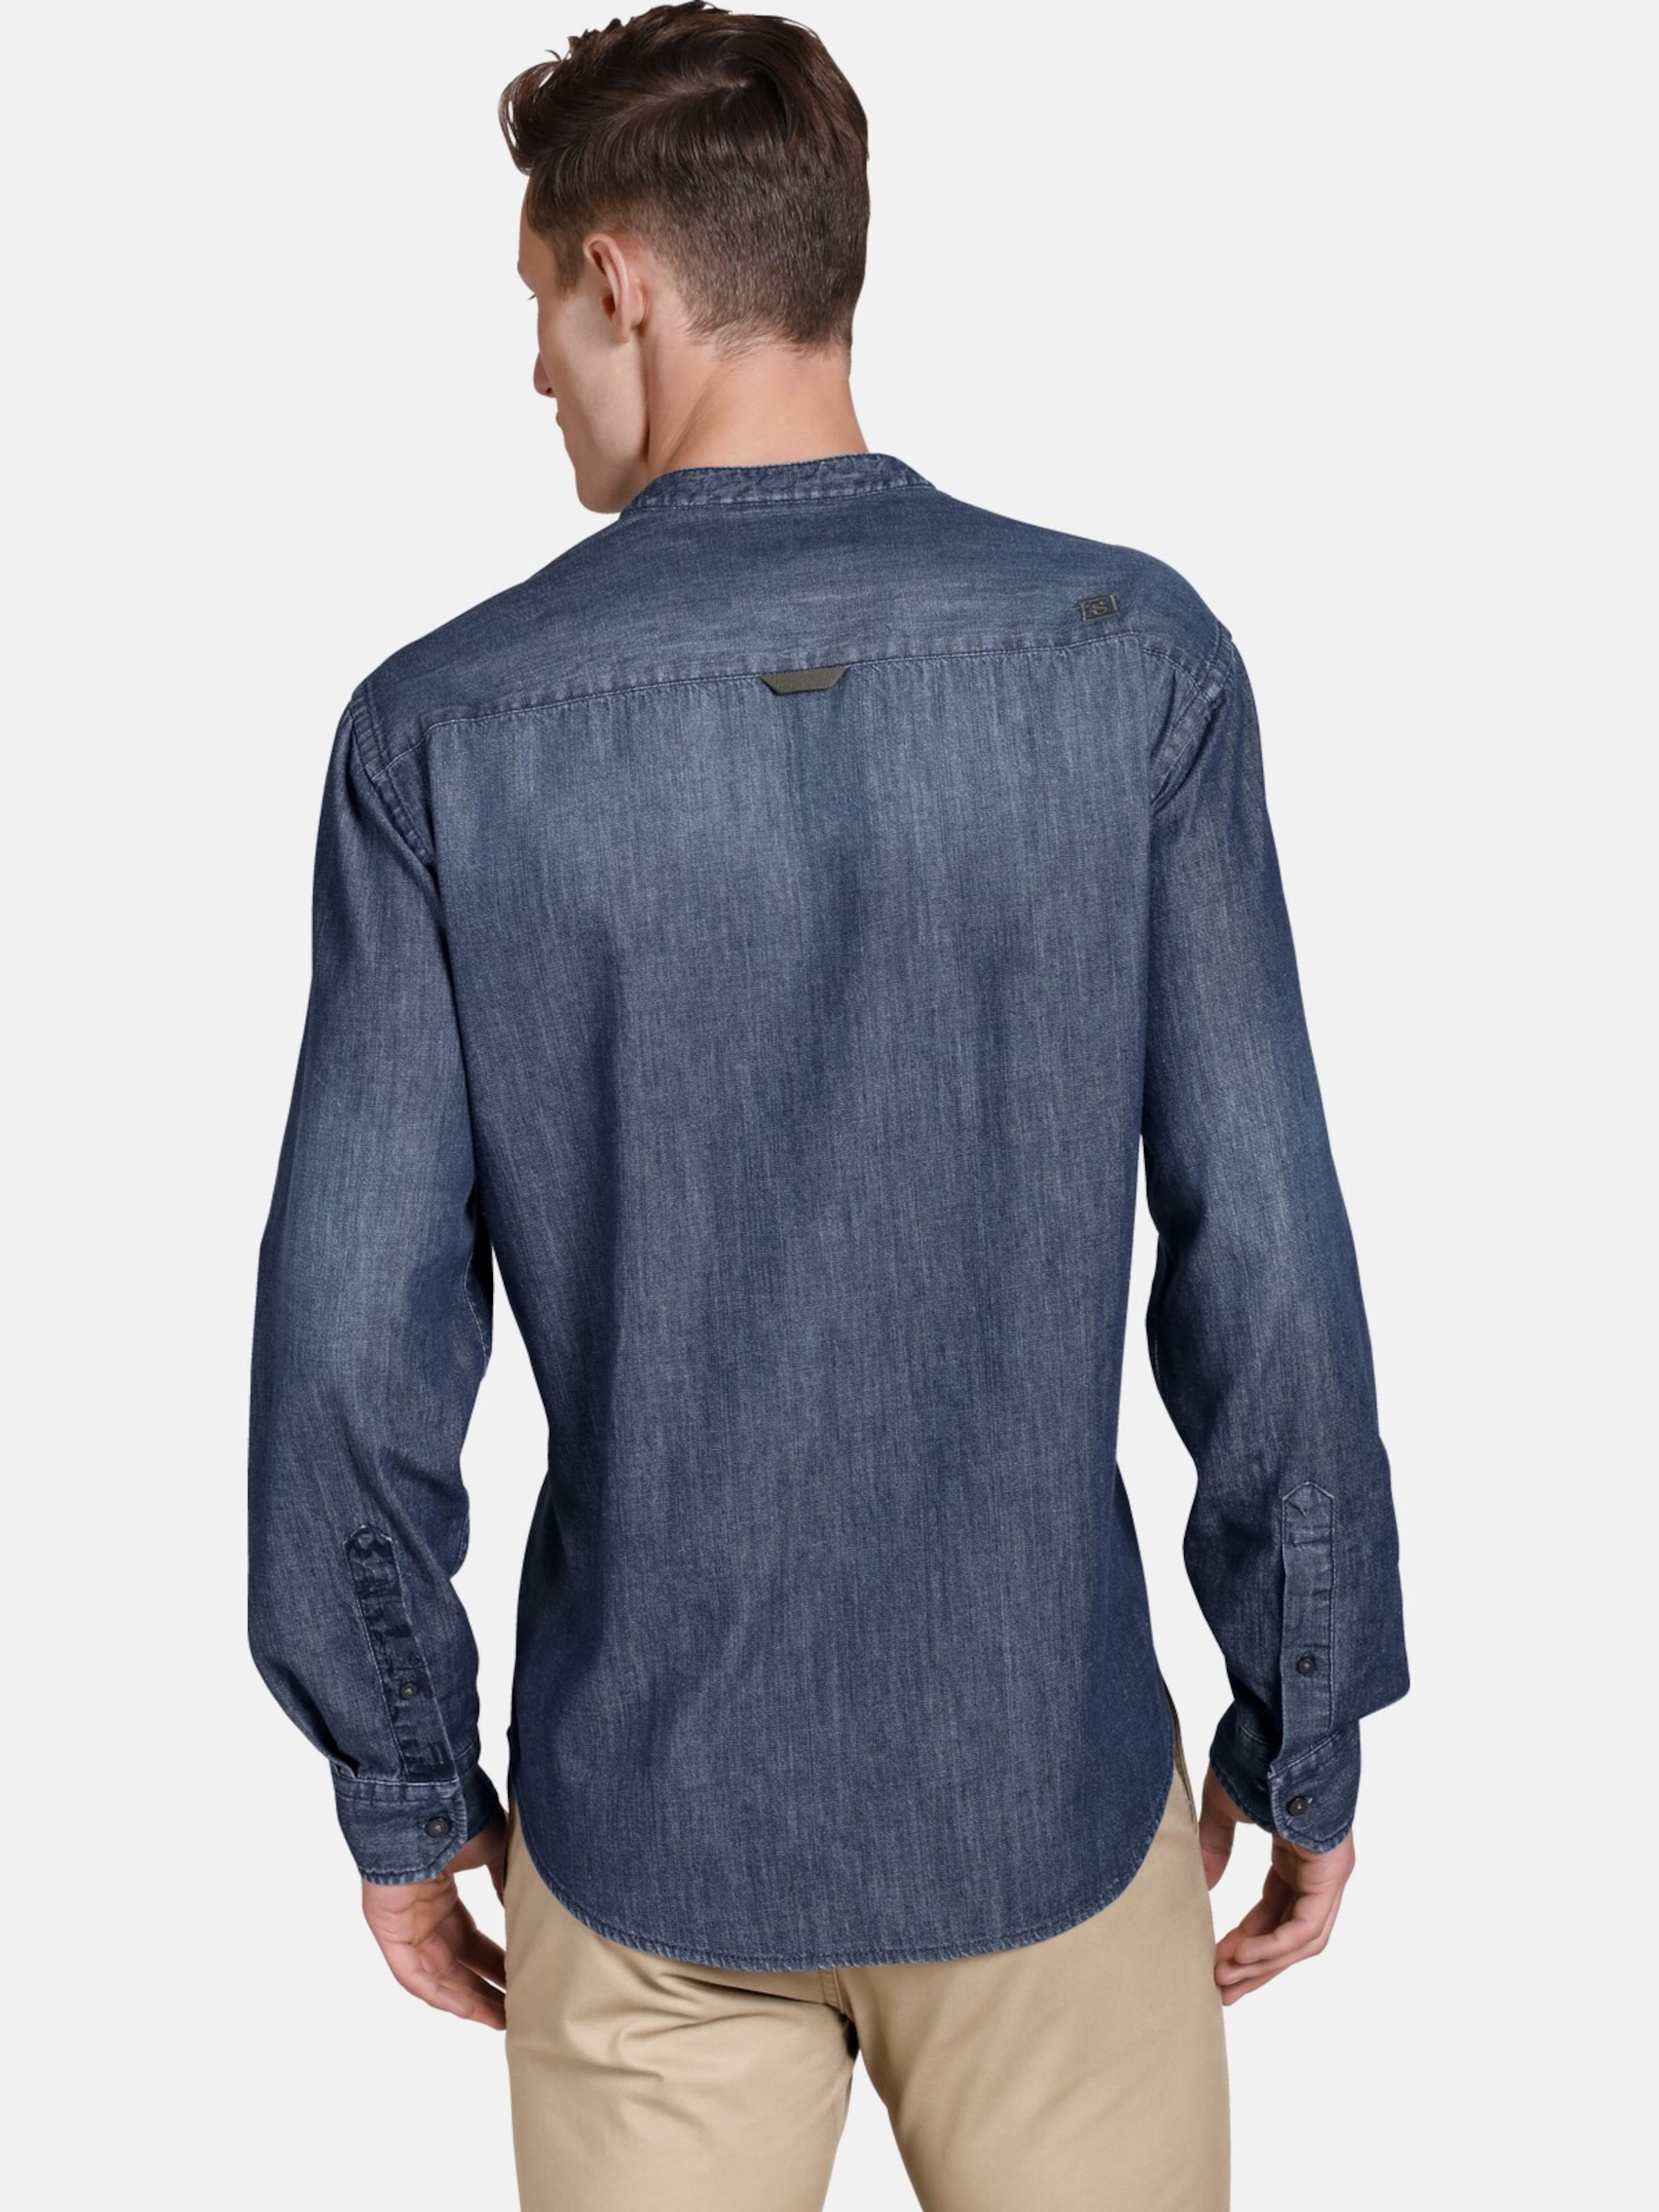 Blue Shirtmaster Denim In 'funkydenim' Jeanshemd WDEH29YI